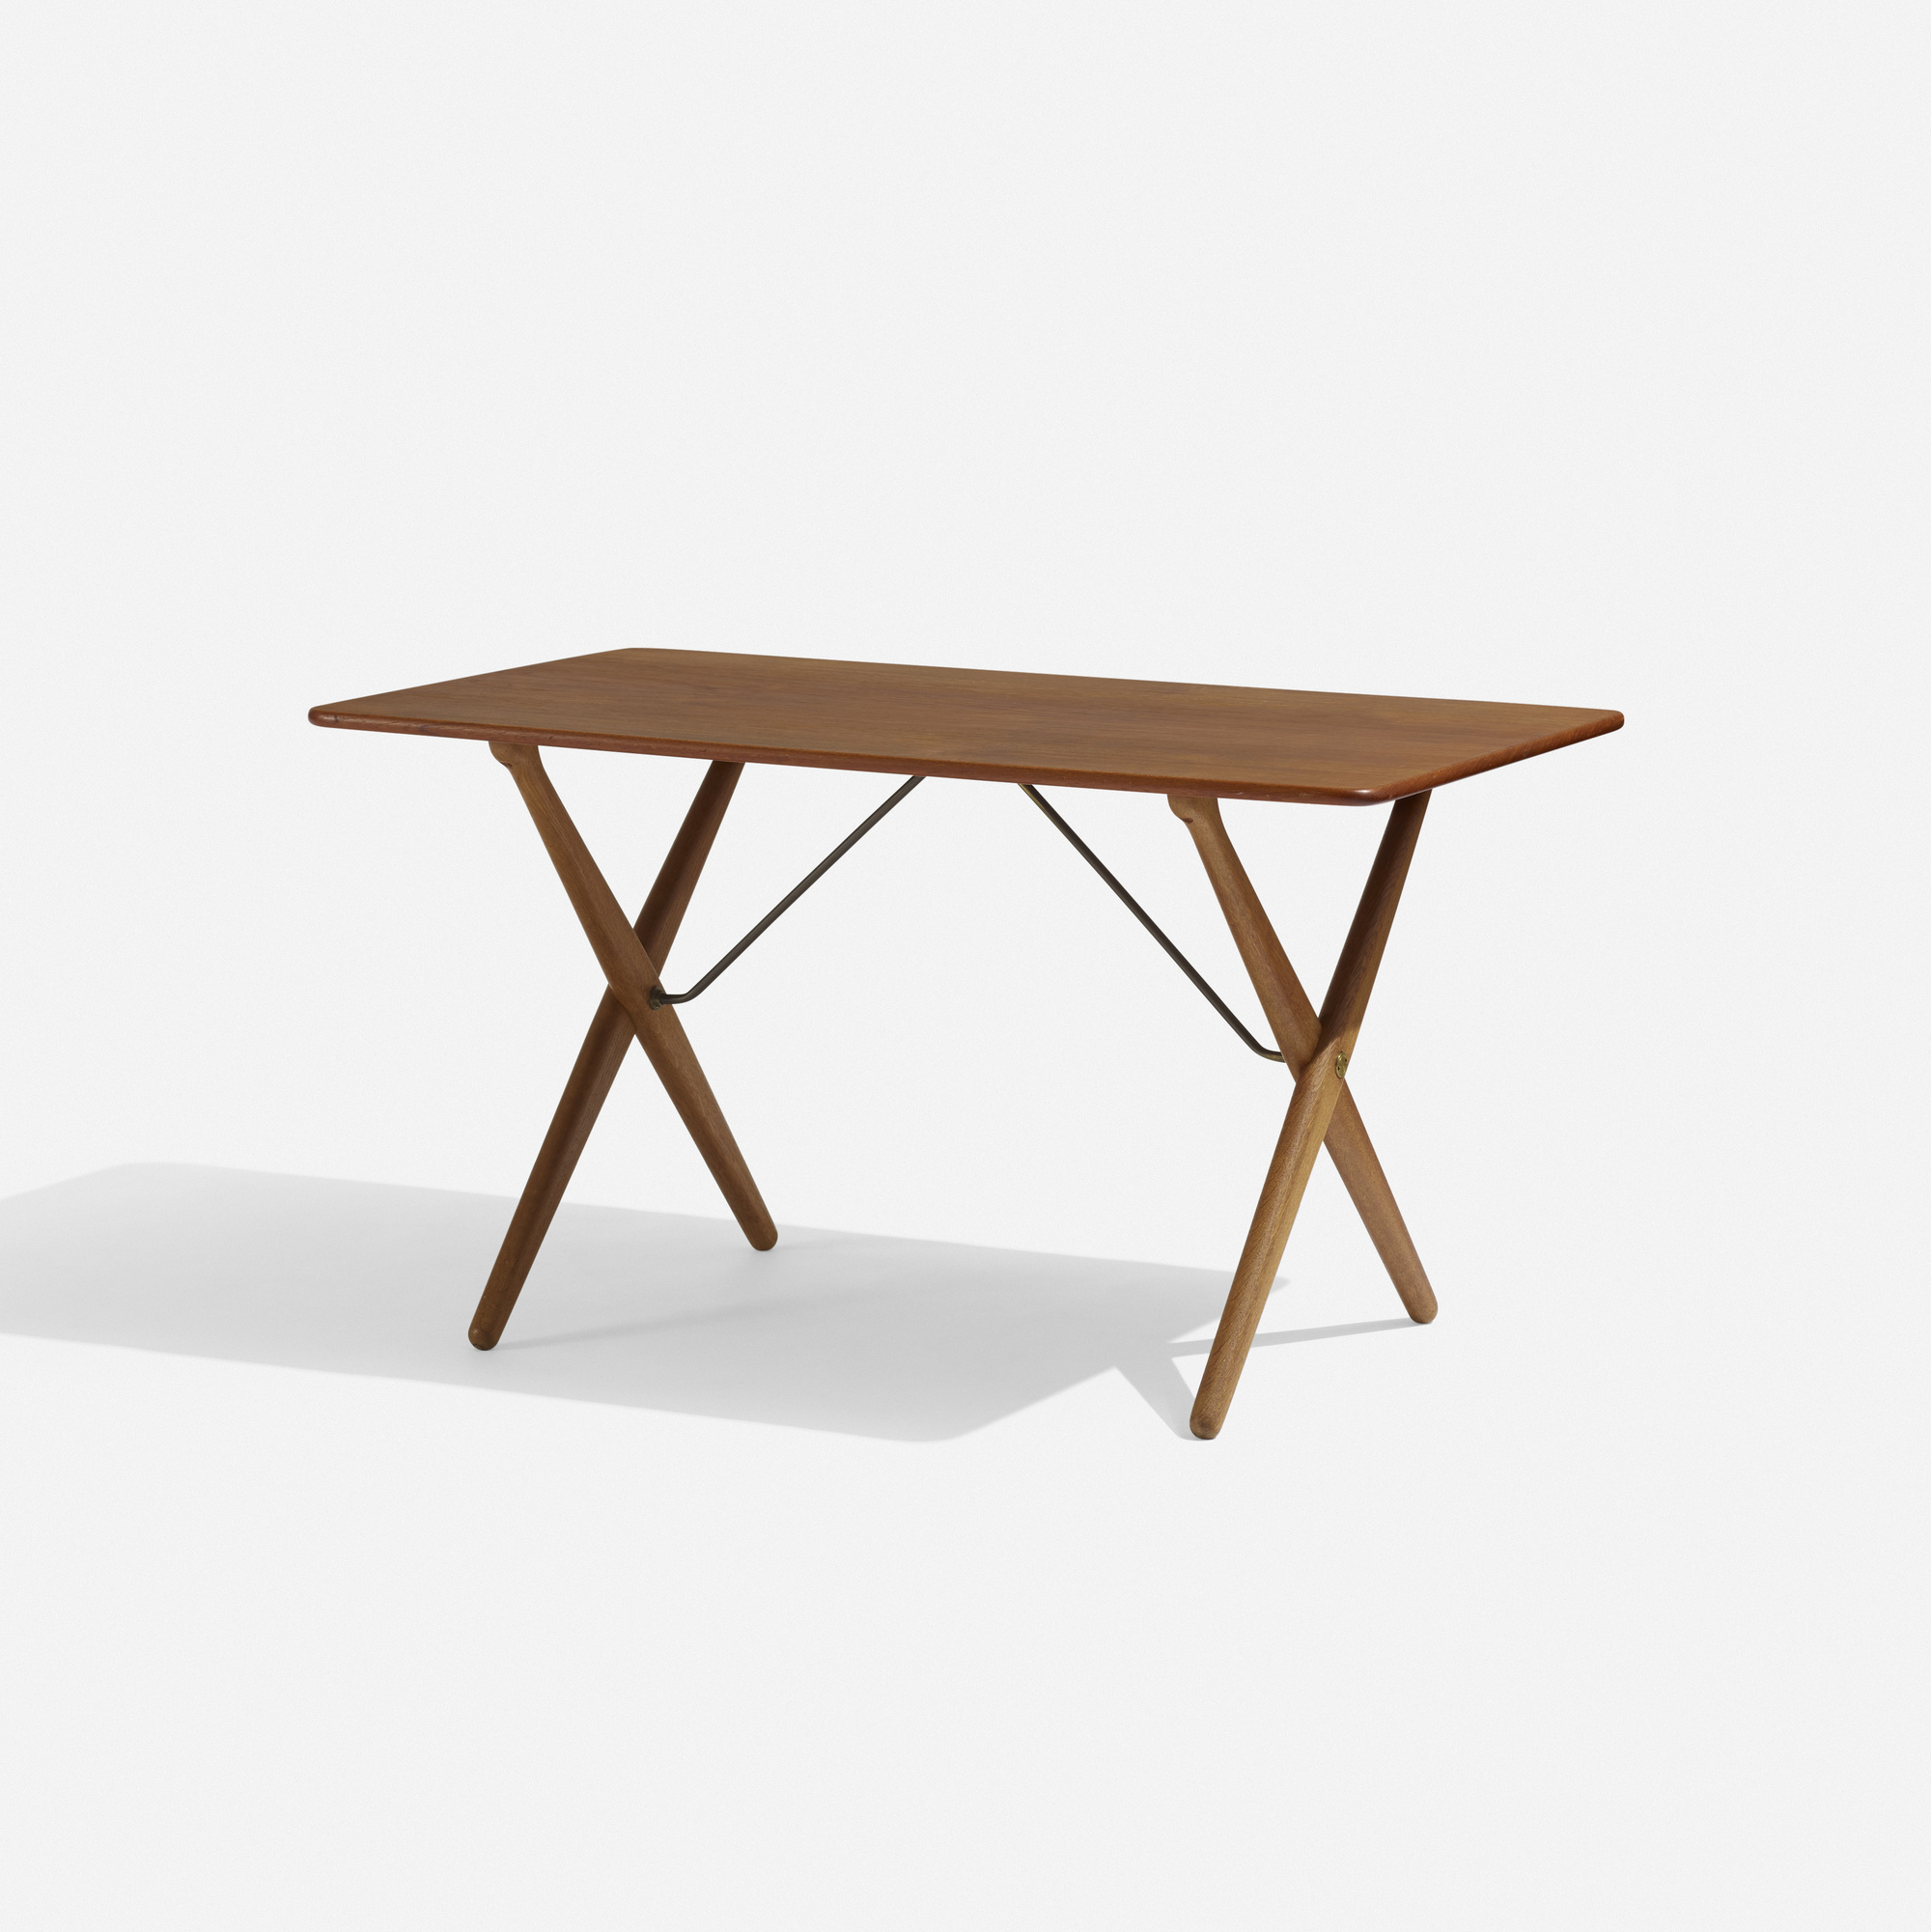 288: Hans J. Wegner / occasional table (1 of 3)